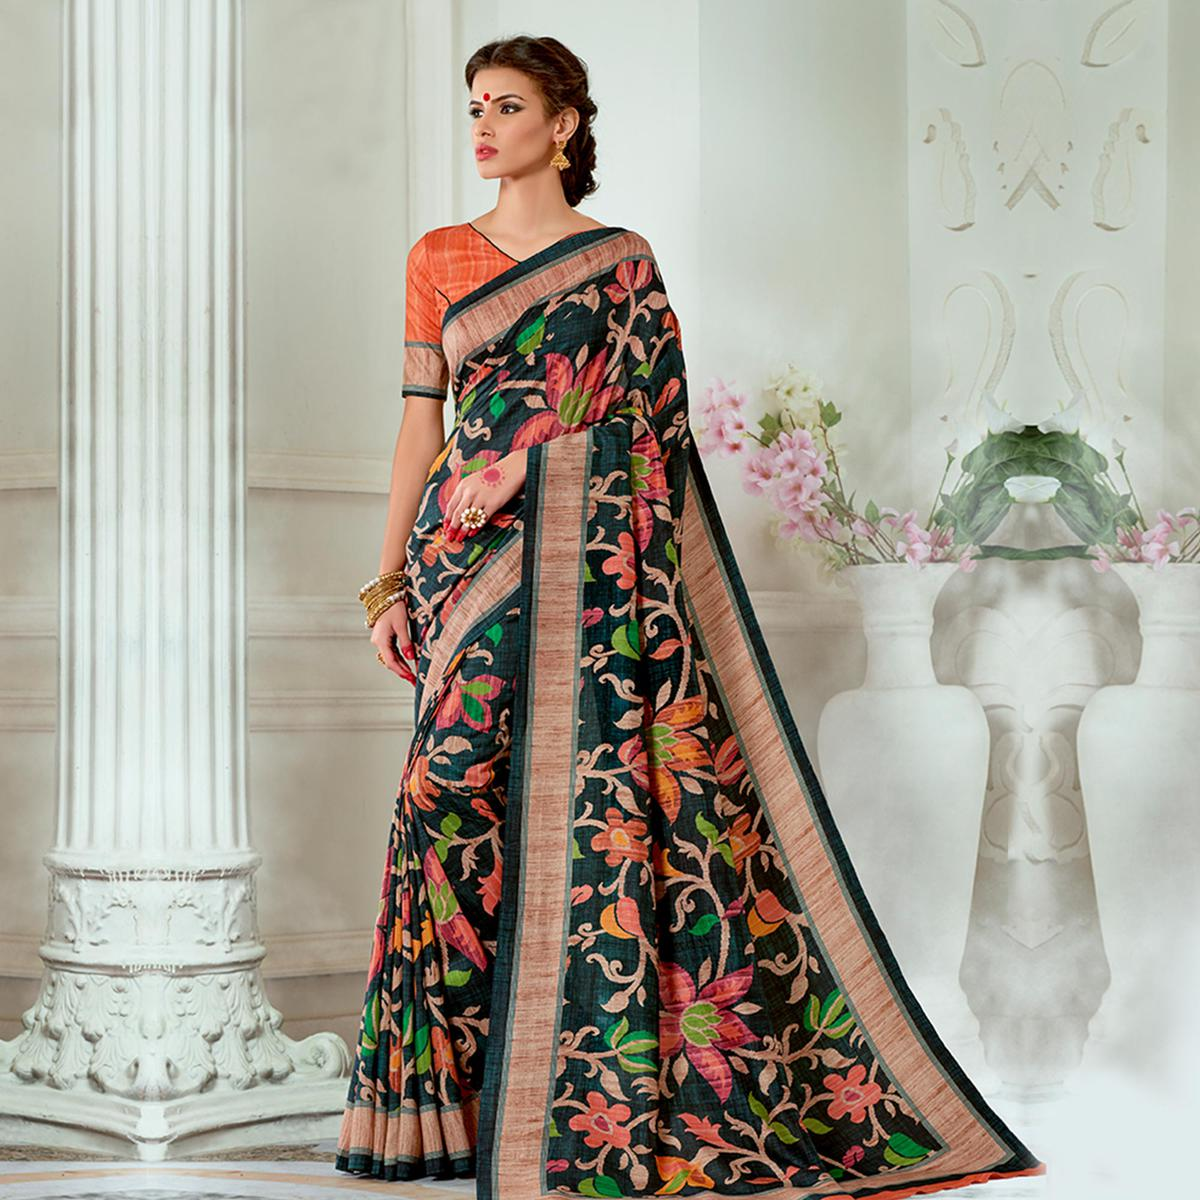 Intricate Black Colored Casual Wear Digital Printed Tussar Silk Saree